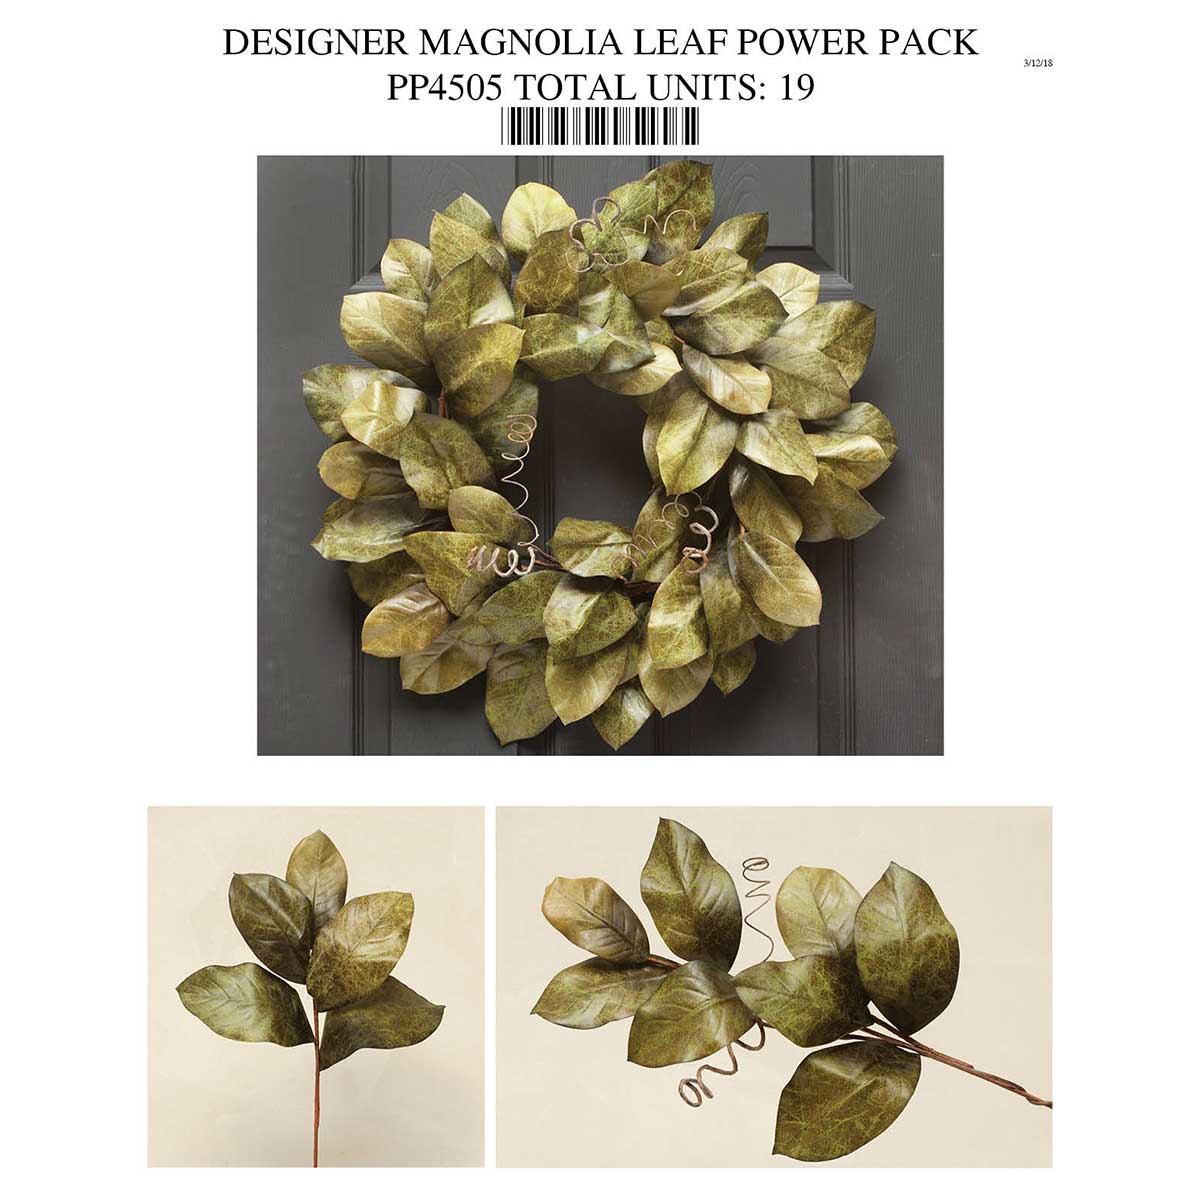 Olive Magnolia Leaf Collection Power Pack 19 Units